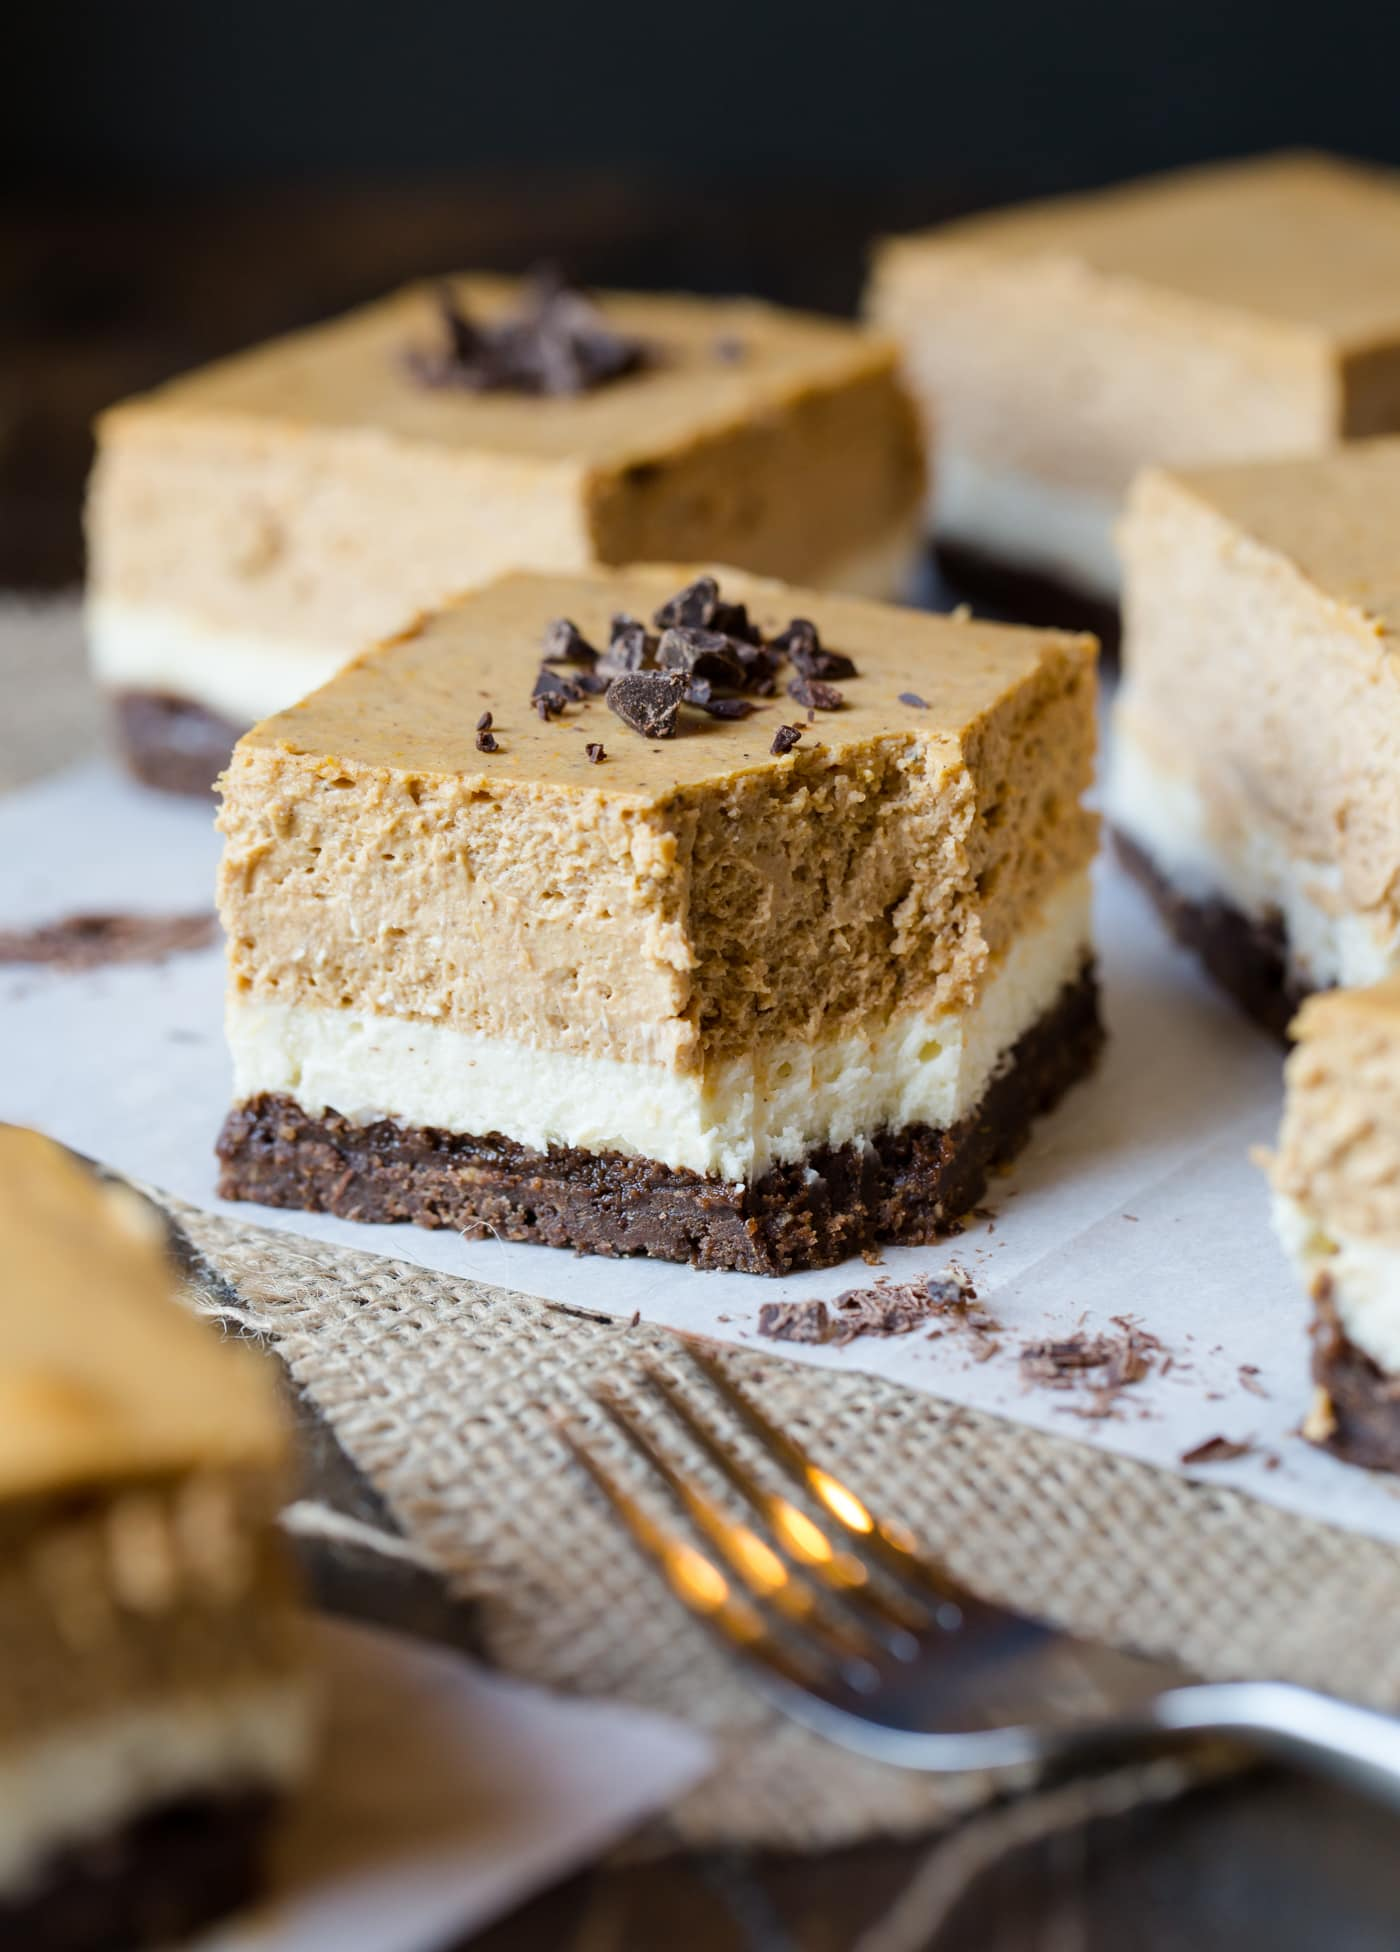 Gluten-free desserts don't have to be boring! These decadent Gluten-Free Chocolate Pumpkin Cheesecake Bars will change your mind about just how delicious gluten-free sweets can be!